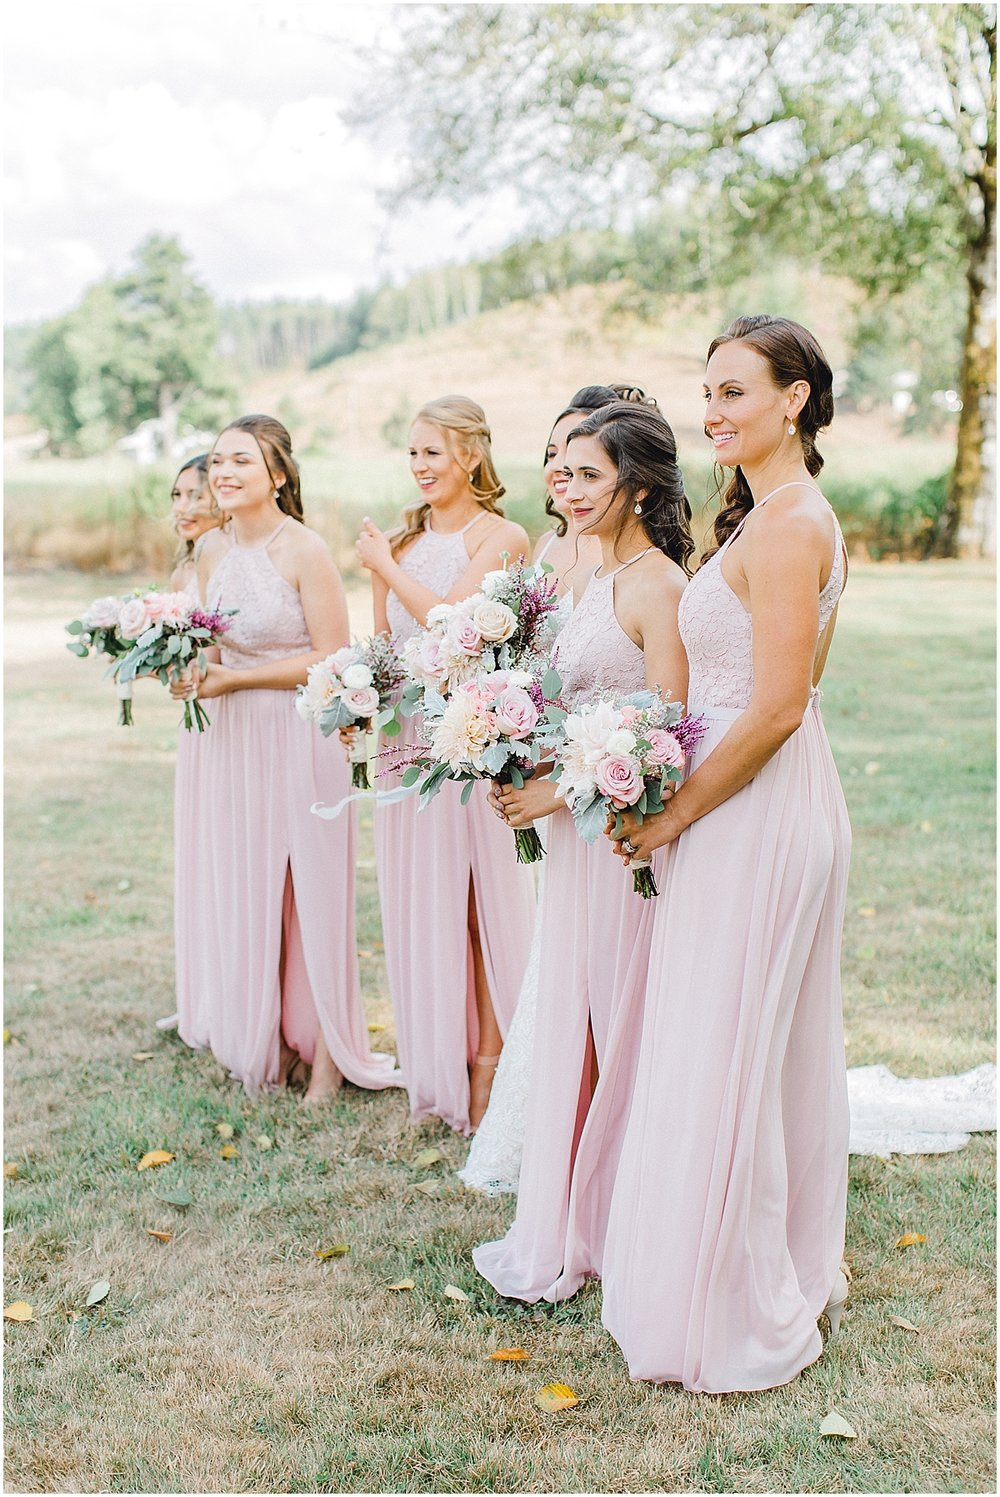 Beautiful mauve wedding in the Pacific Northwest, Emma Rose Company Light and Airy Wedding Photographer Seattle, Washington, Kindred Presets, Wedding Design Details Purple and Blush_0058.jpg